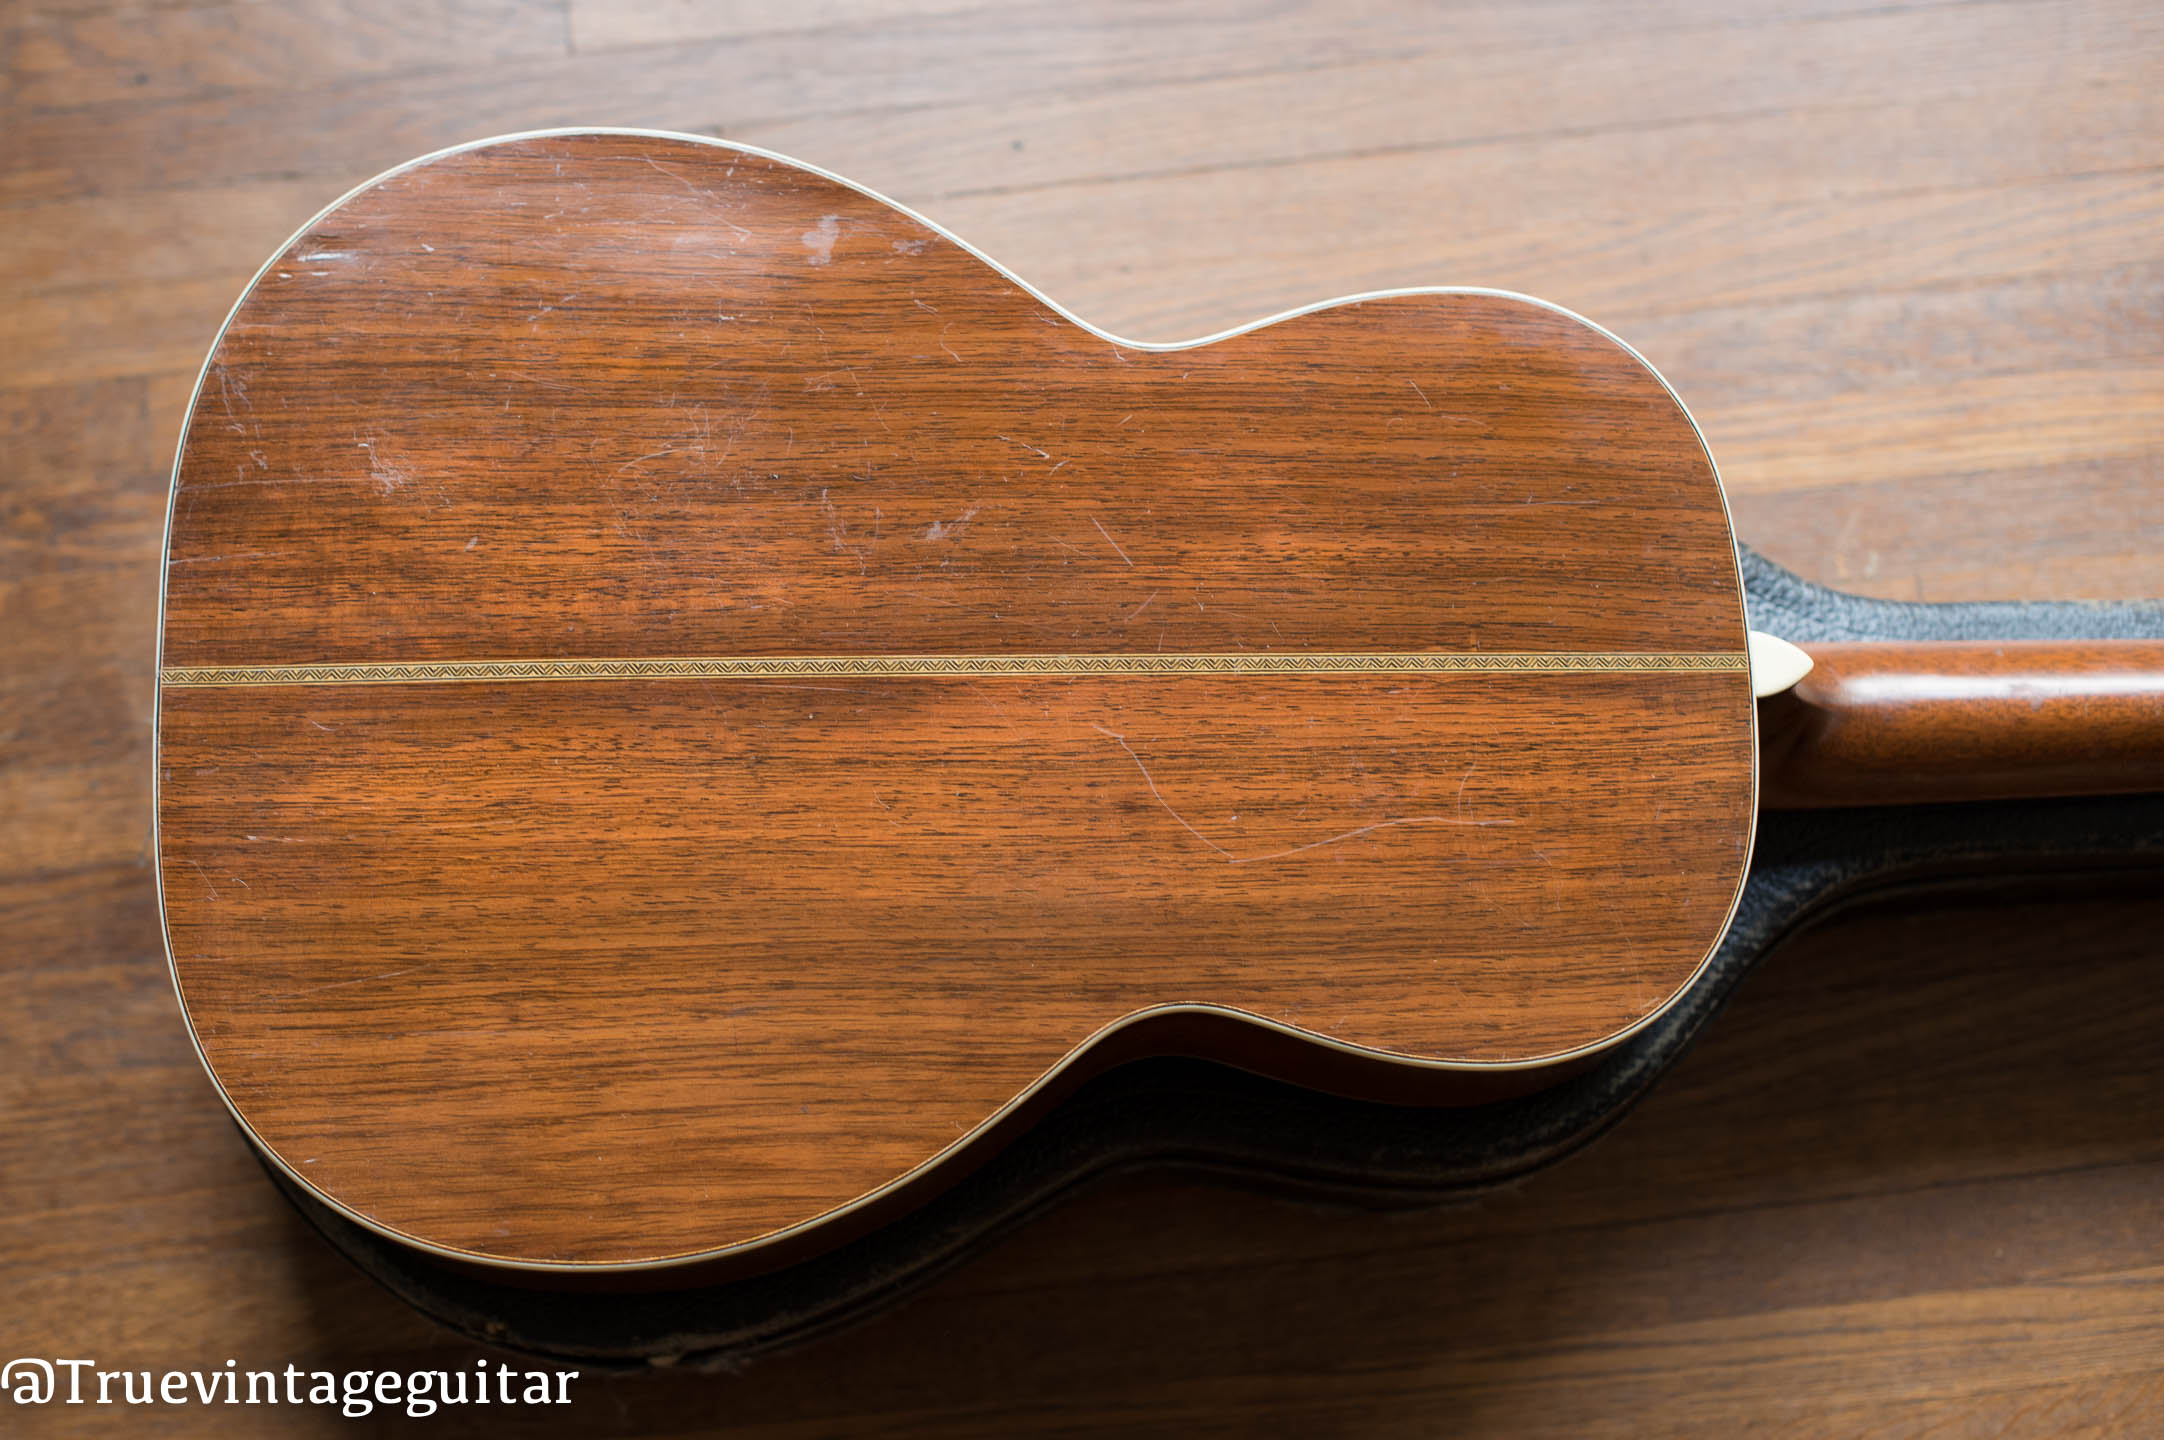 Brazilian Rosewood back and sides, 1929 Martin 00-28